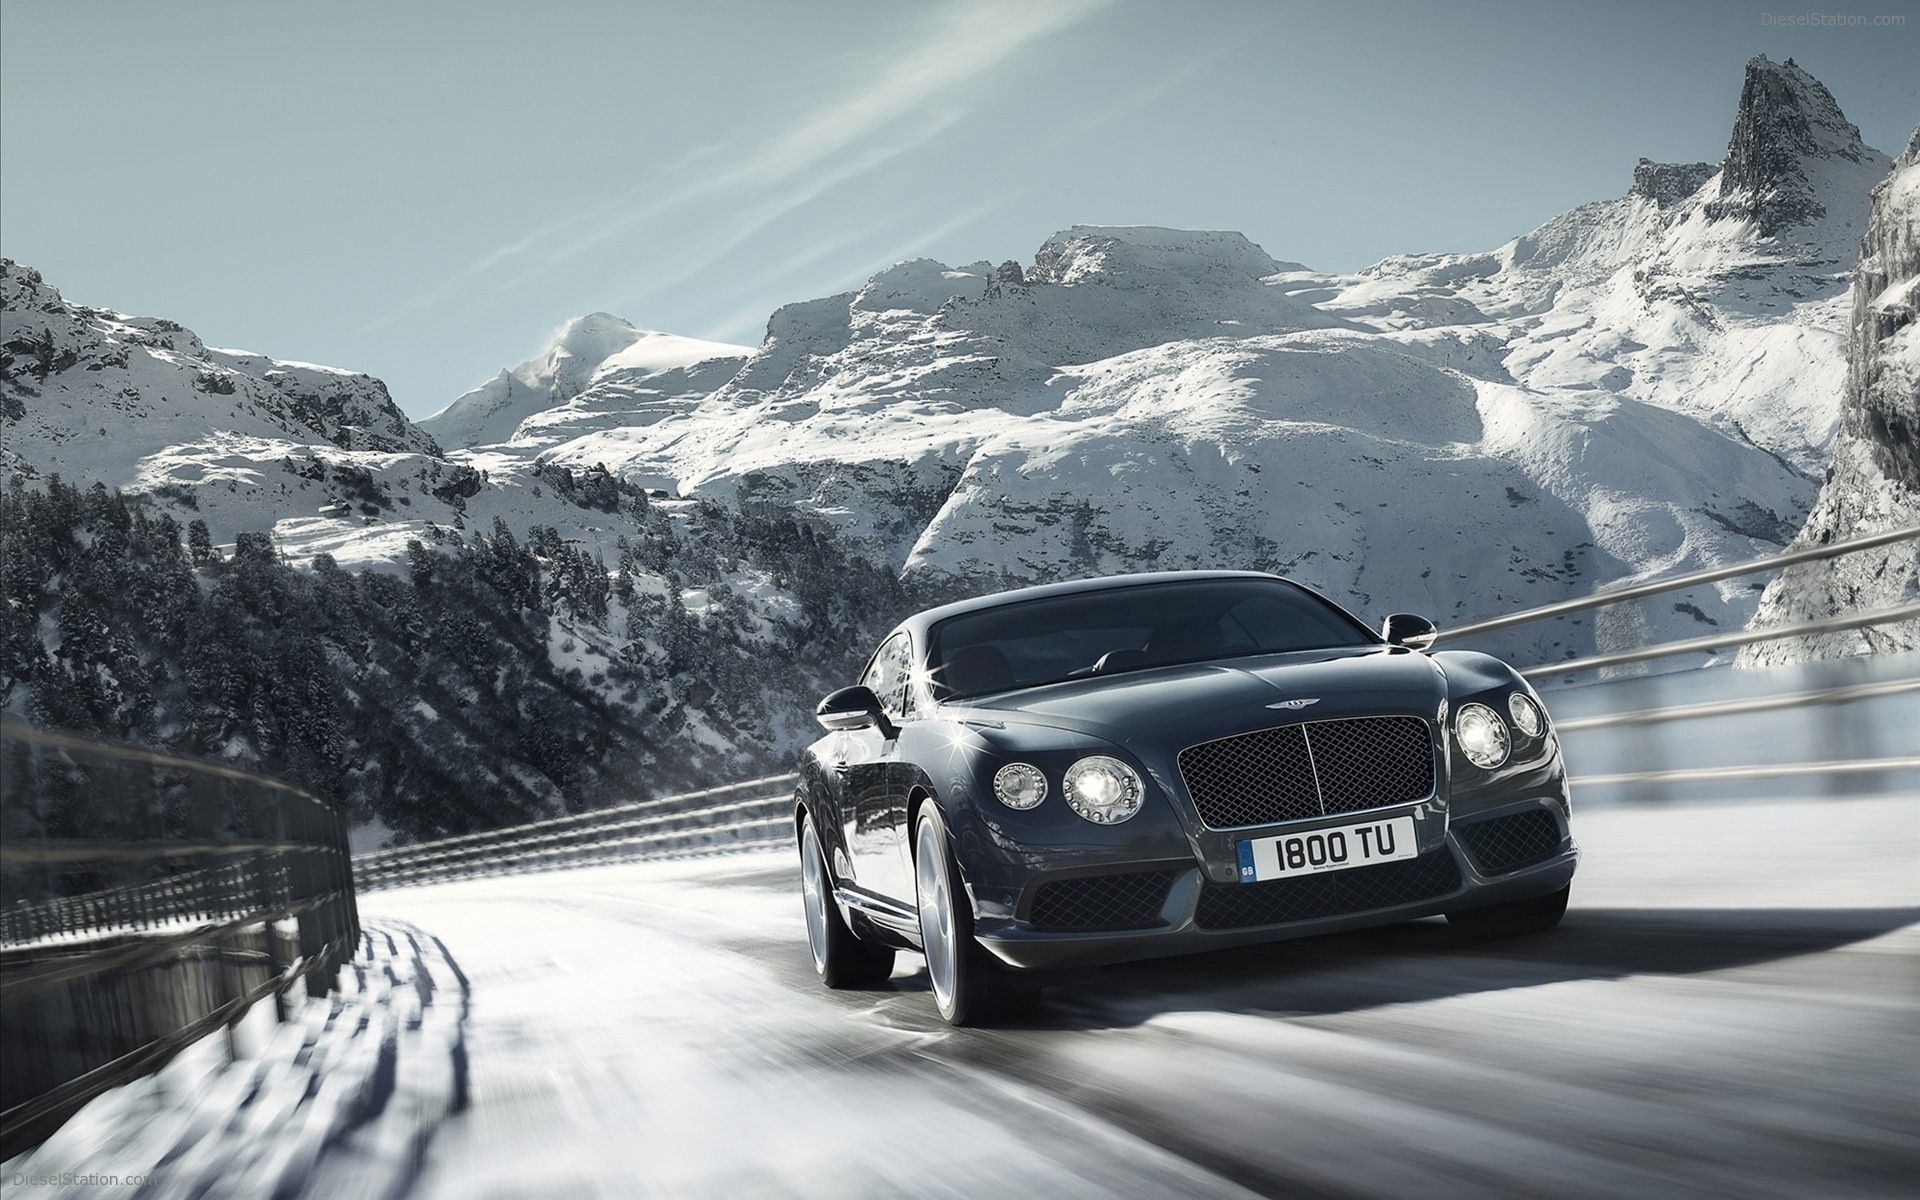 Bentley continental gtc black wallpaper wallpaper free download bentley continental gtc black wallpaper wallpaper free download 19201200 bentley wallpaper 44 wallpapers vanachro Choice Image